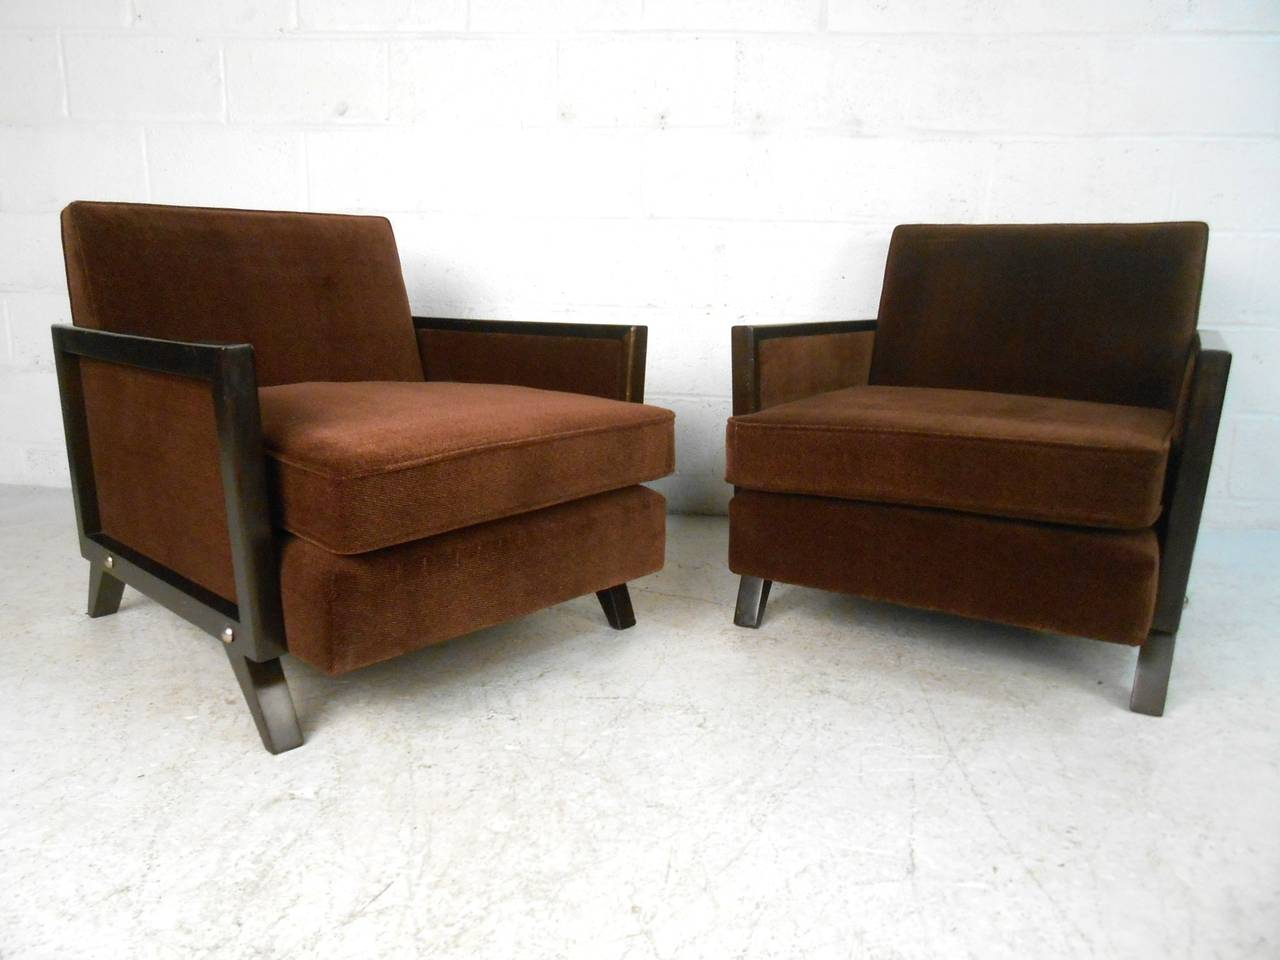 Pair mid century modern upholstered lounge chairs at 1stdibs for Mid century modern upholstered chair